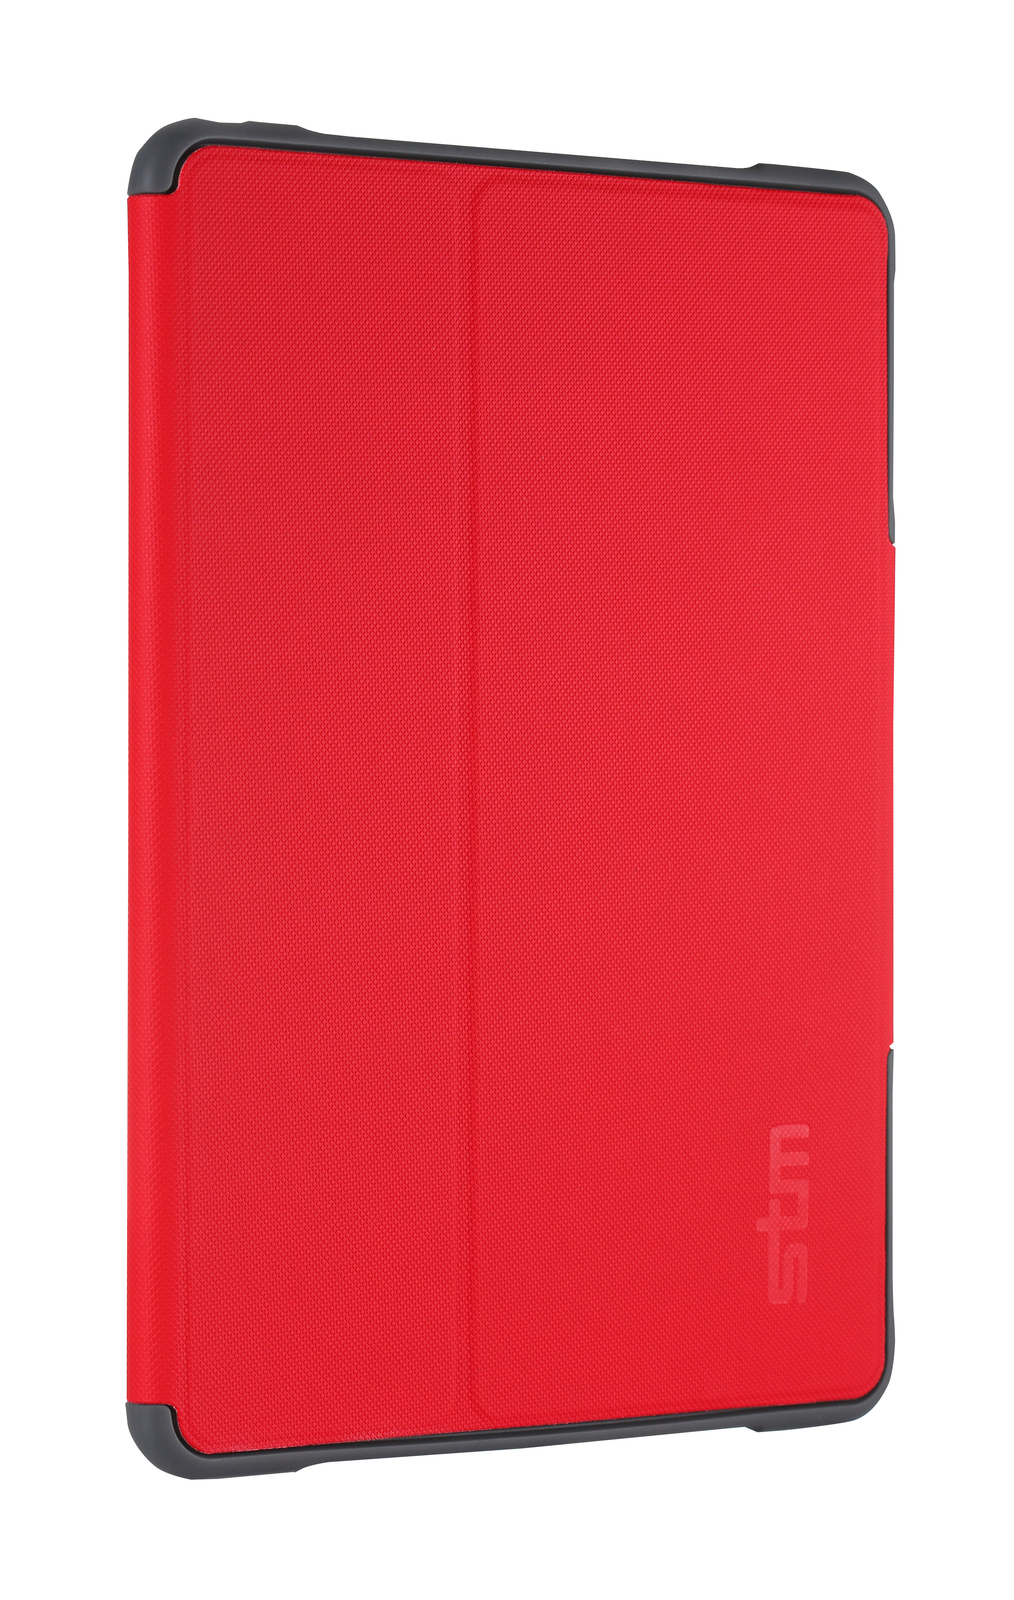 STM Dux for iPad Air 2 - Red image